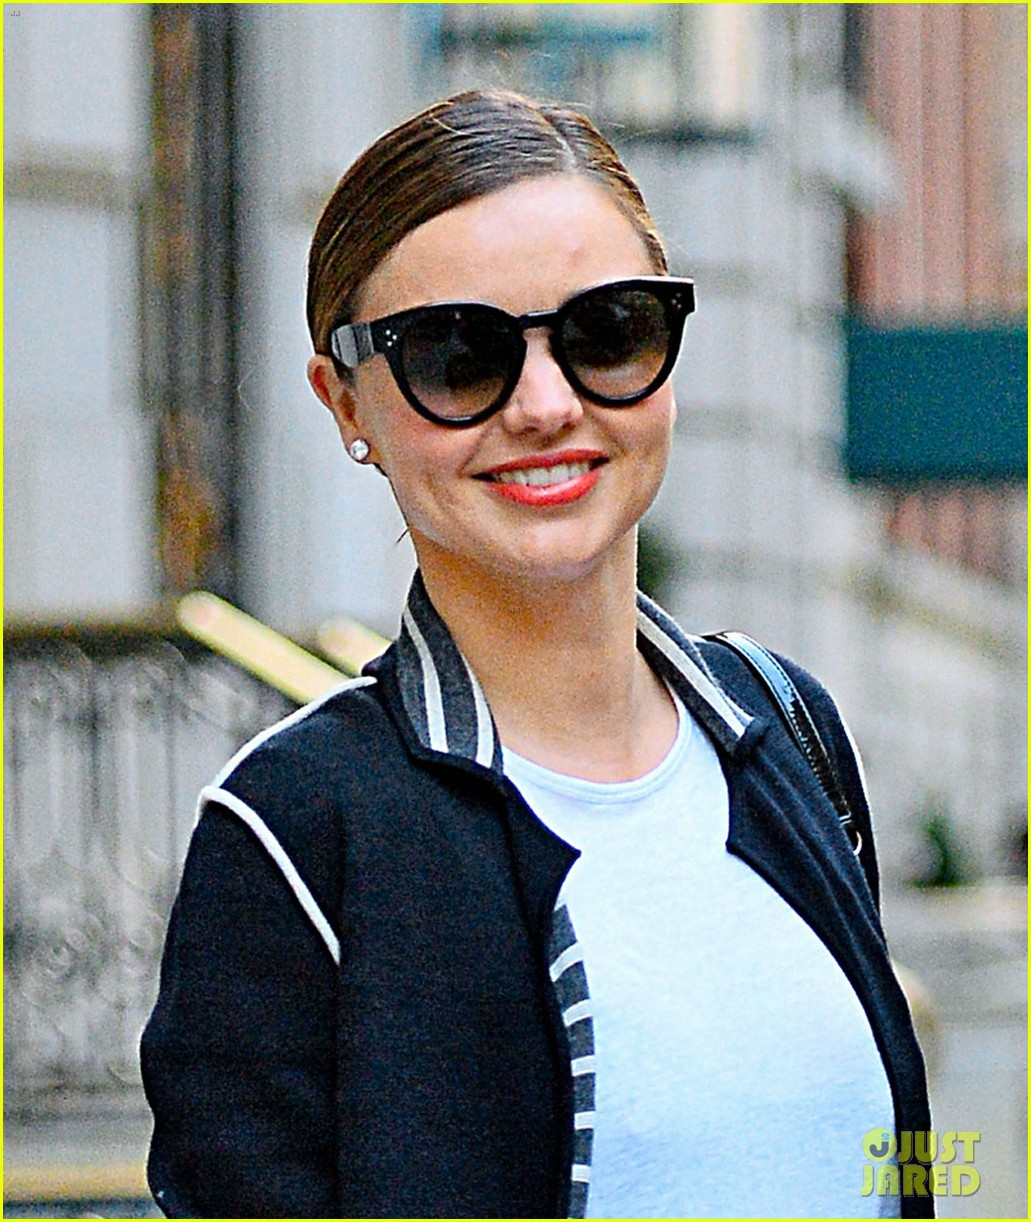 miranda kerr sidewalk runway new york city 03